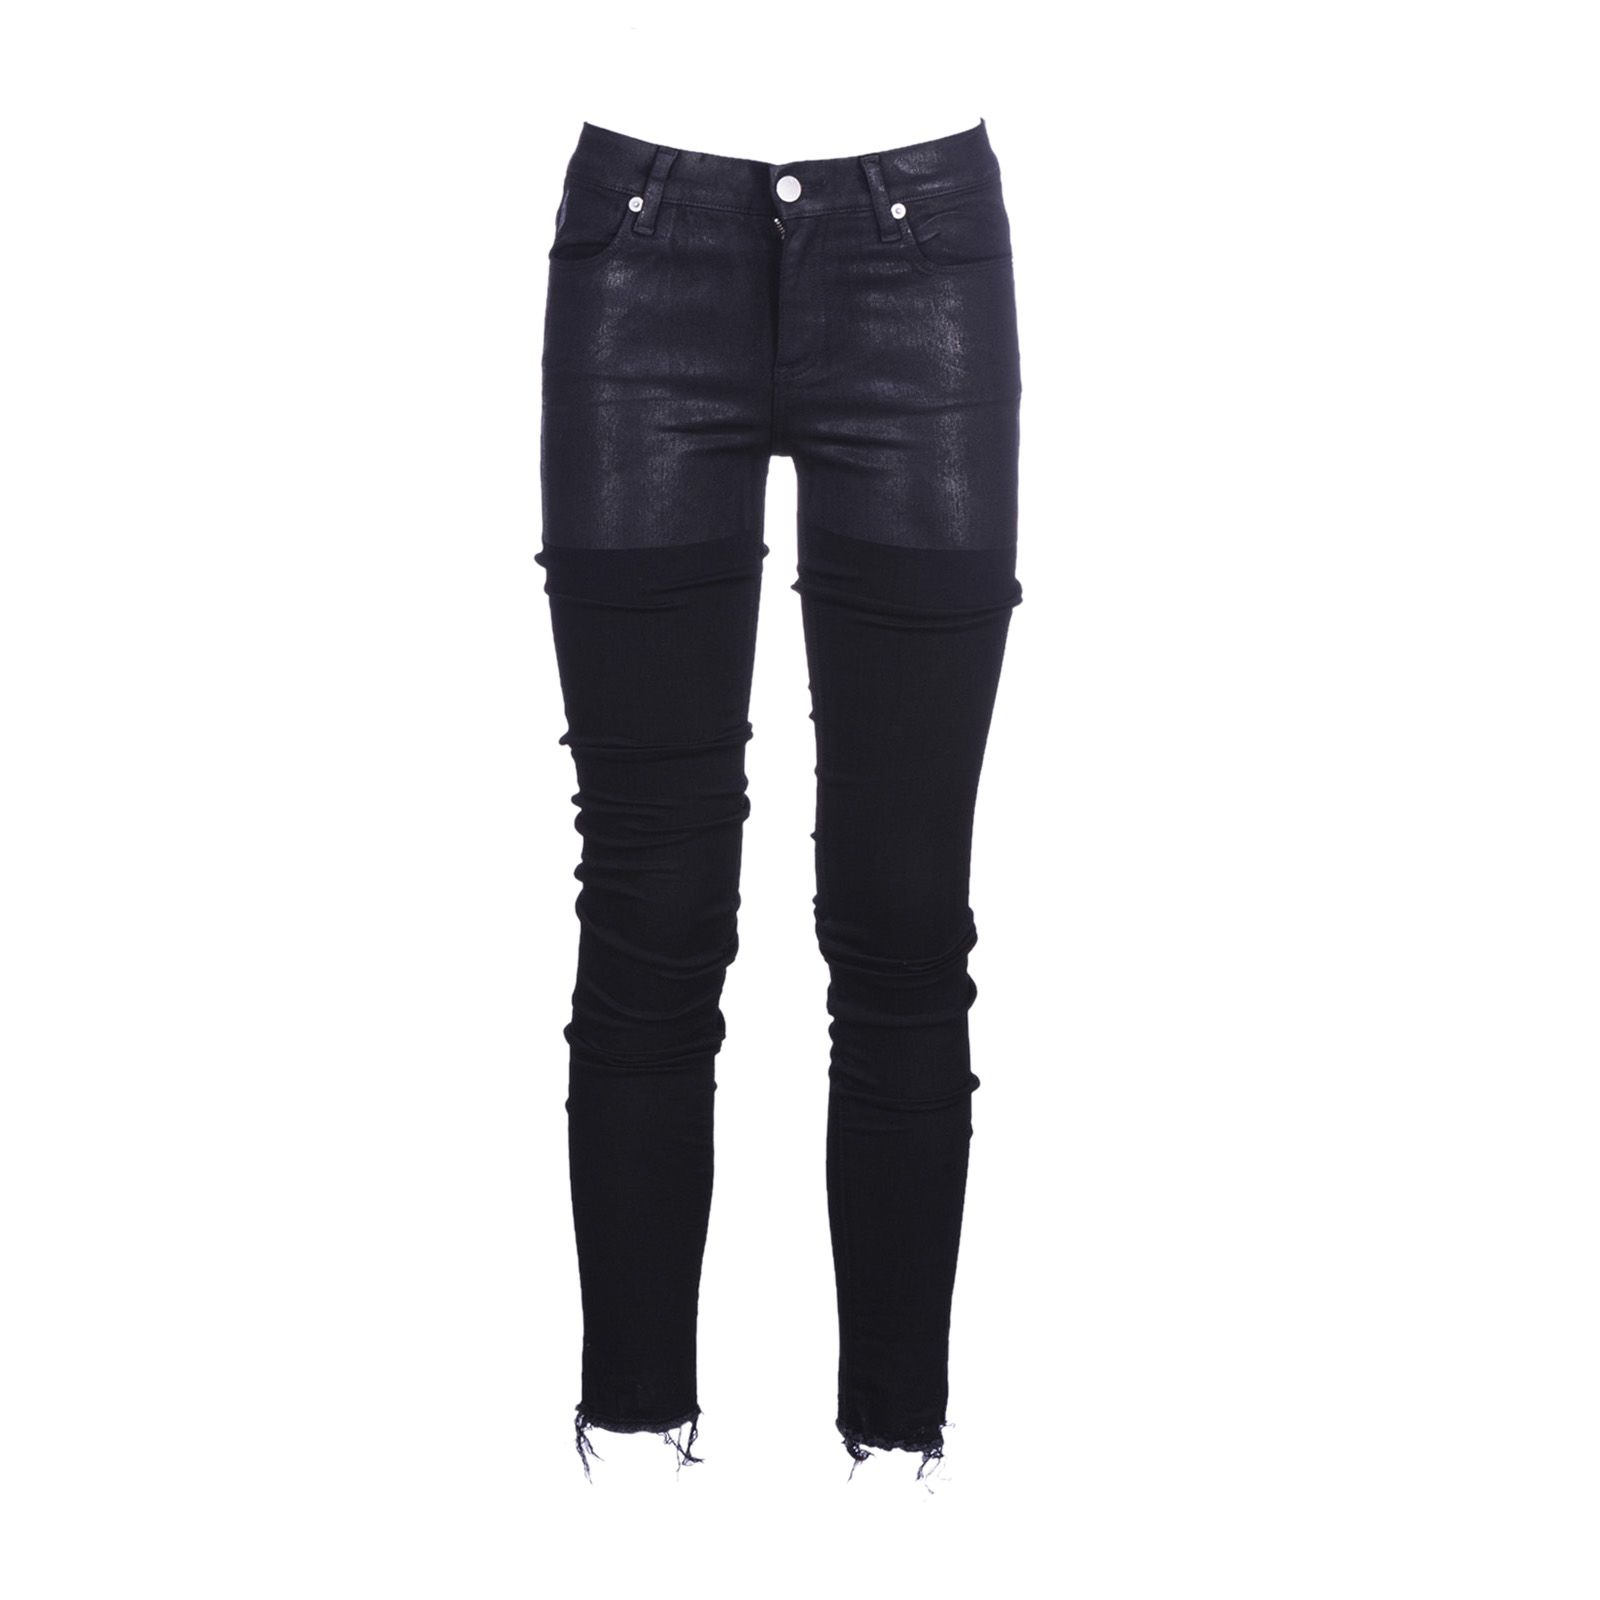 Alyx Waxed Slim Fit Jeans